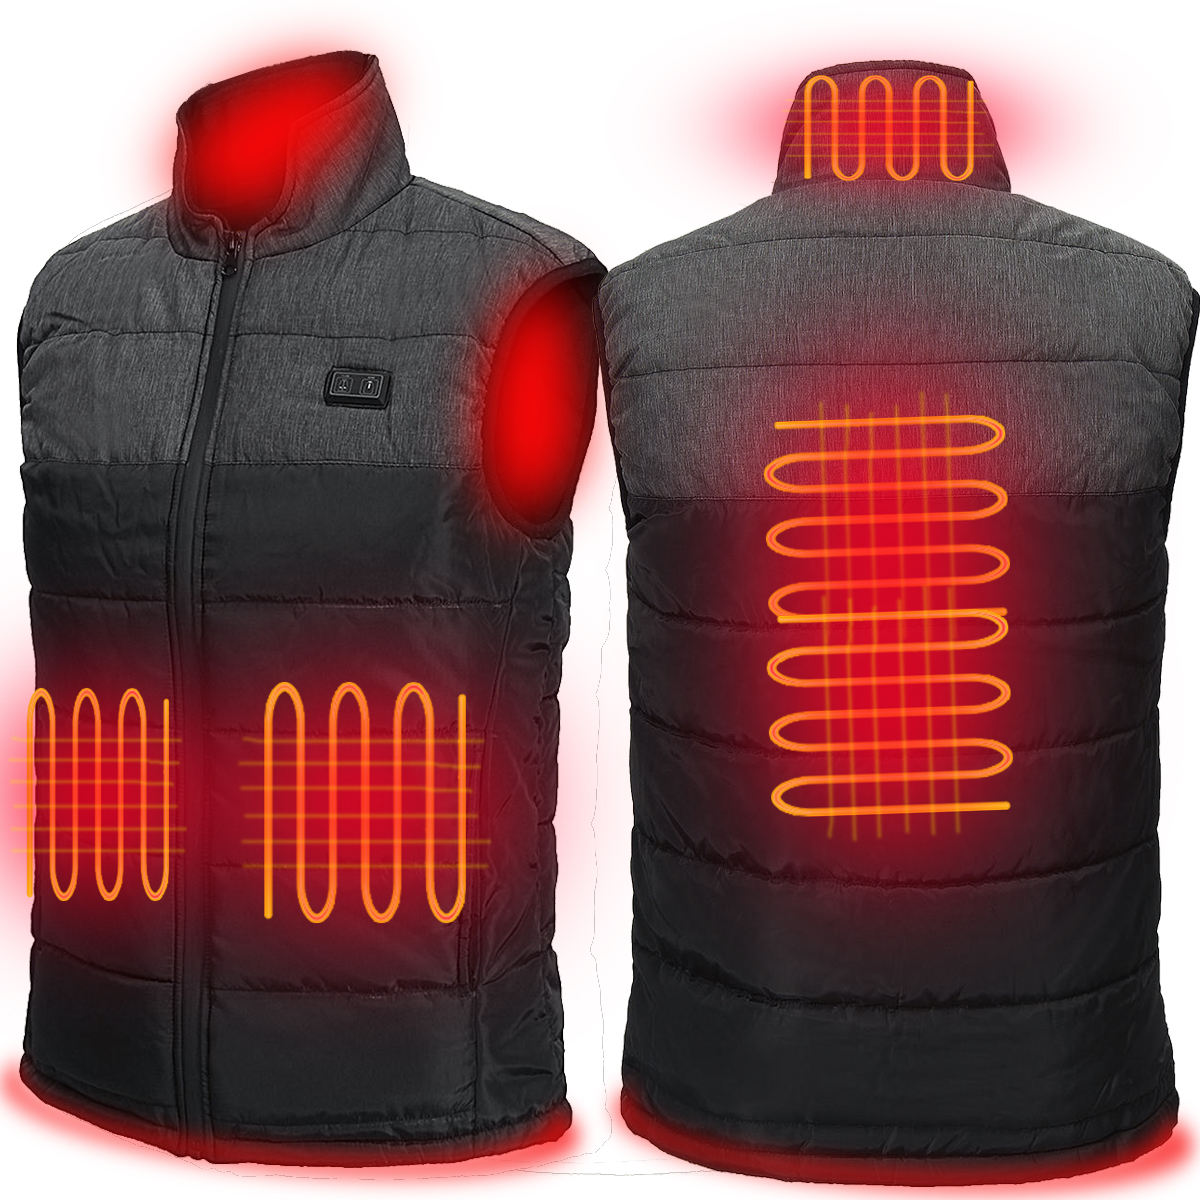 New functional USB 5V battery powered cheap waistcoat for man electric heated mans vest for winter